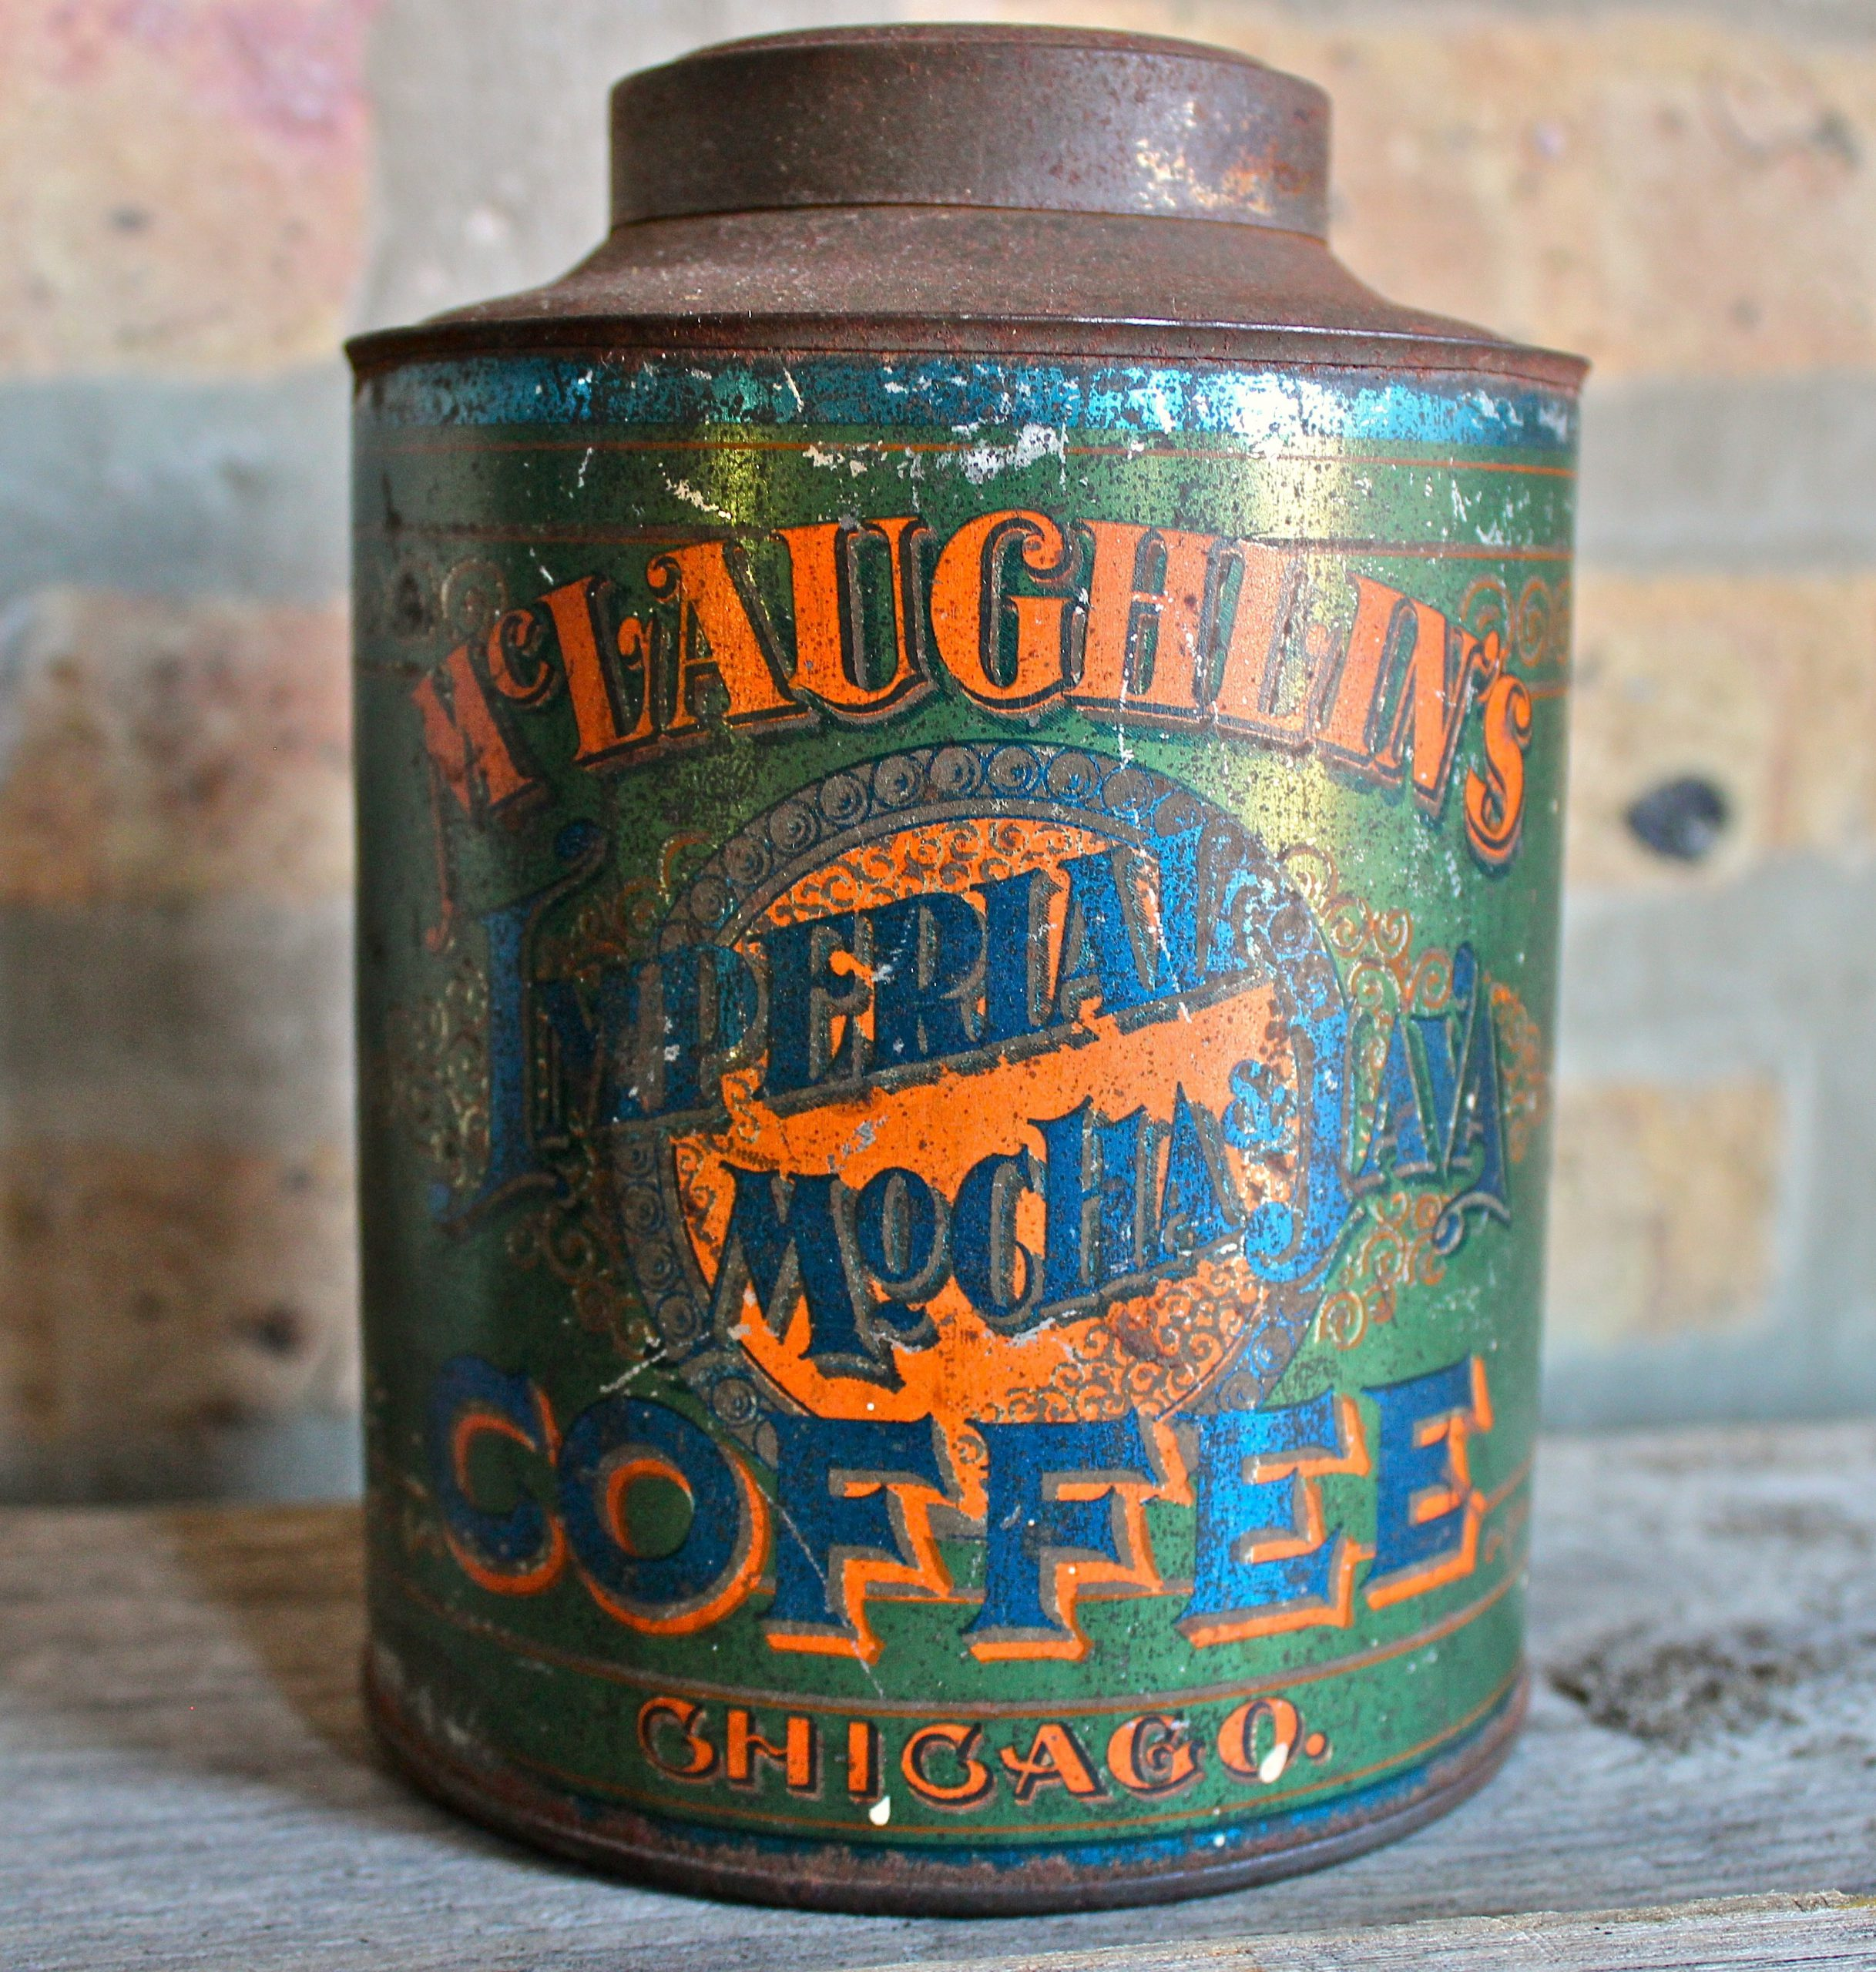 W. F. McLaughlin & Co., est. 1852